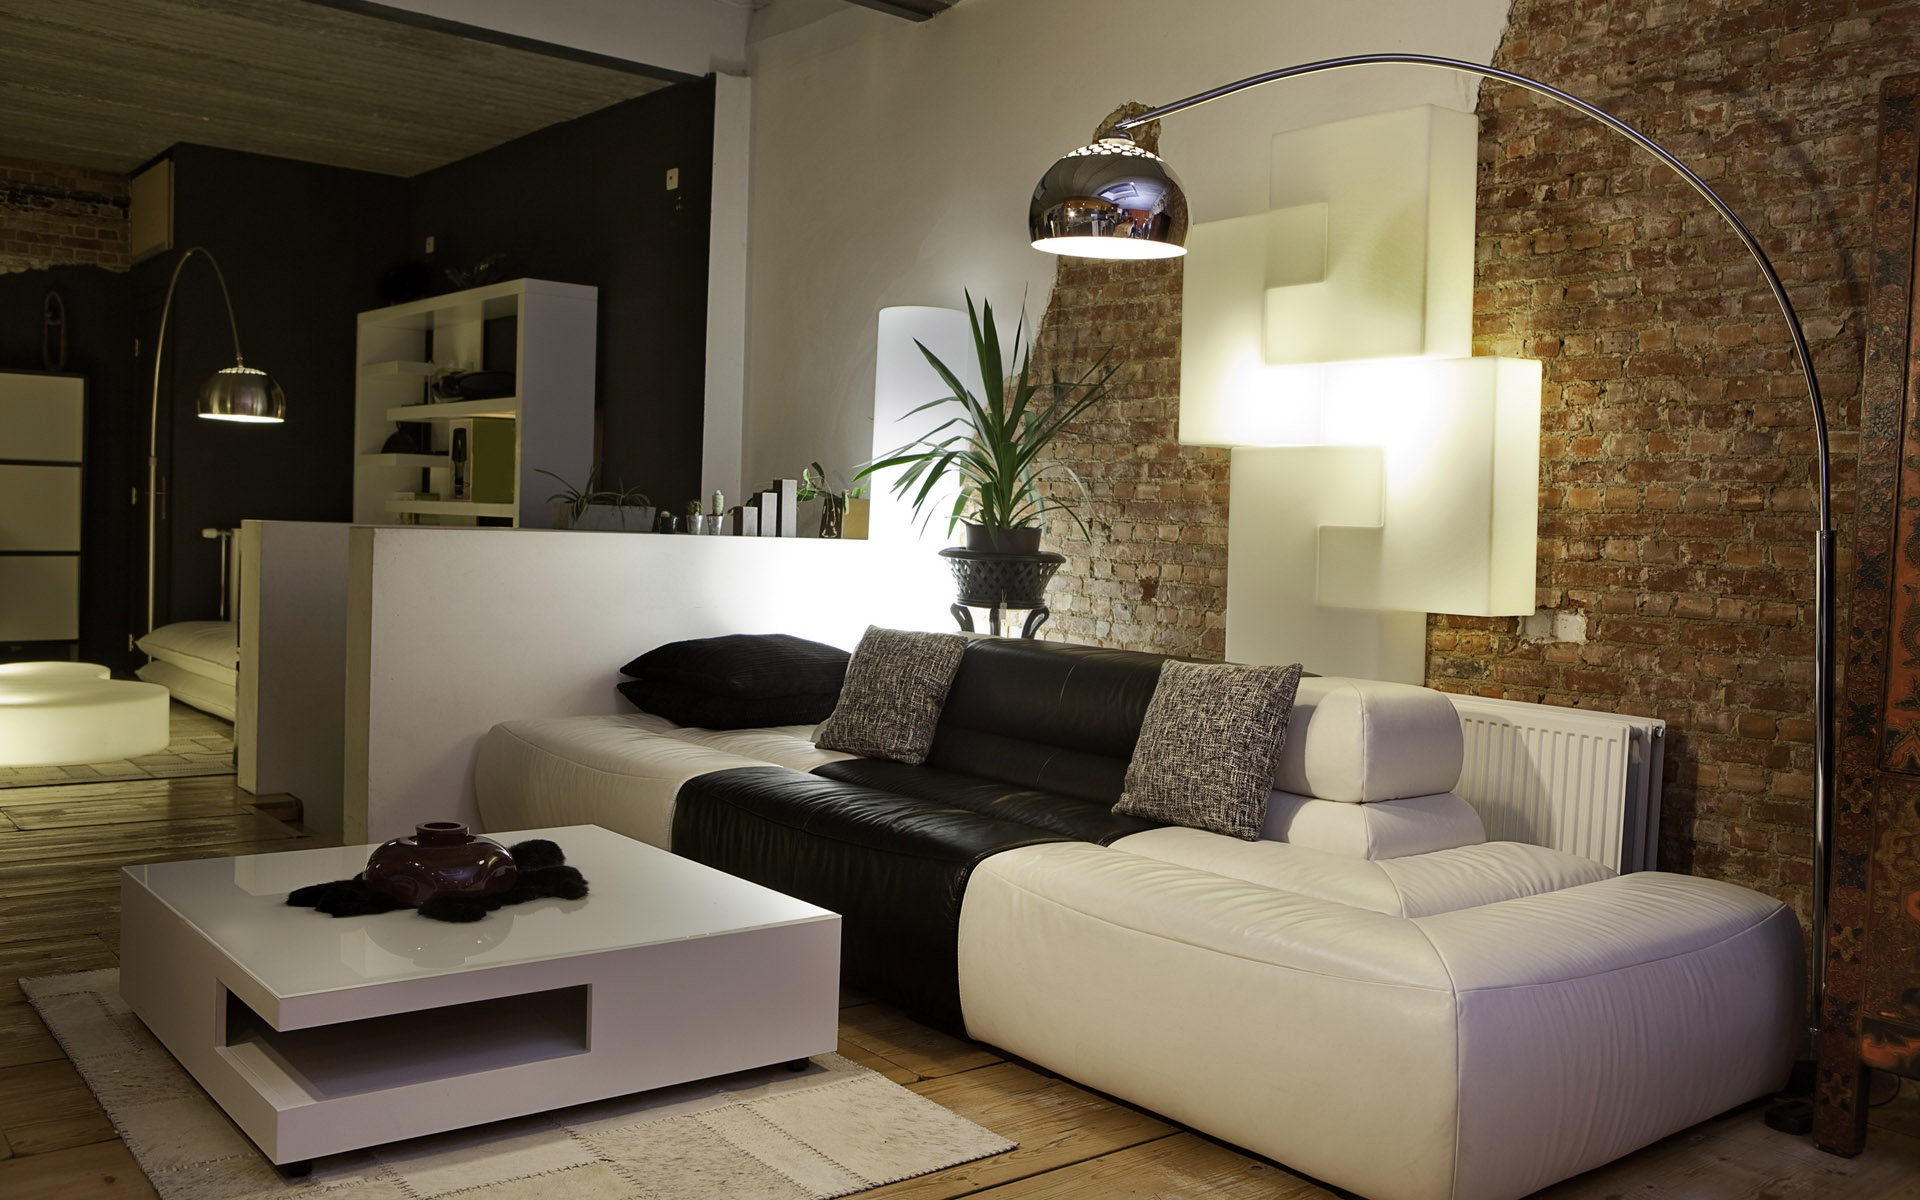 contemporary-20-living-room-design living room design 15 Exclusive Furniture Trends for your Living Room Design contemporary 20 living room design